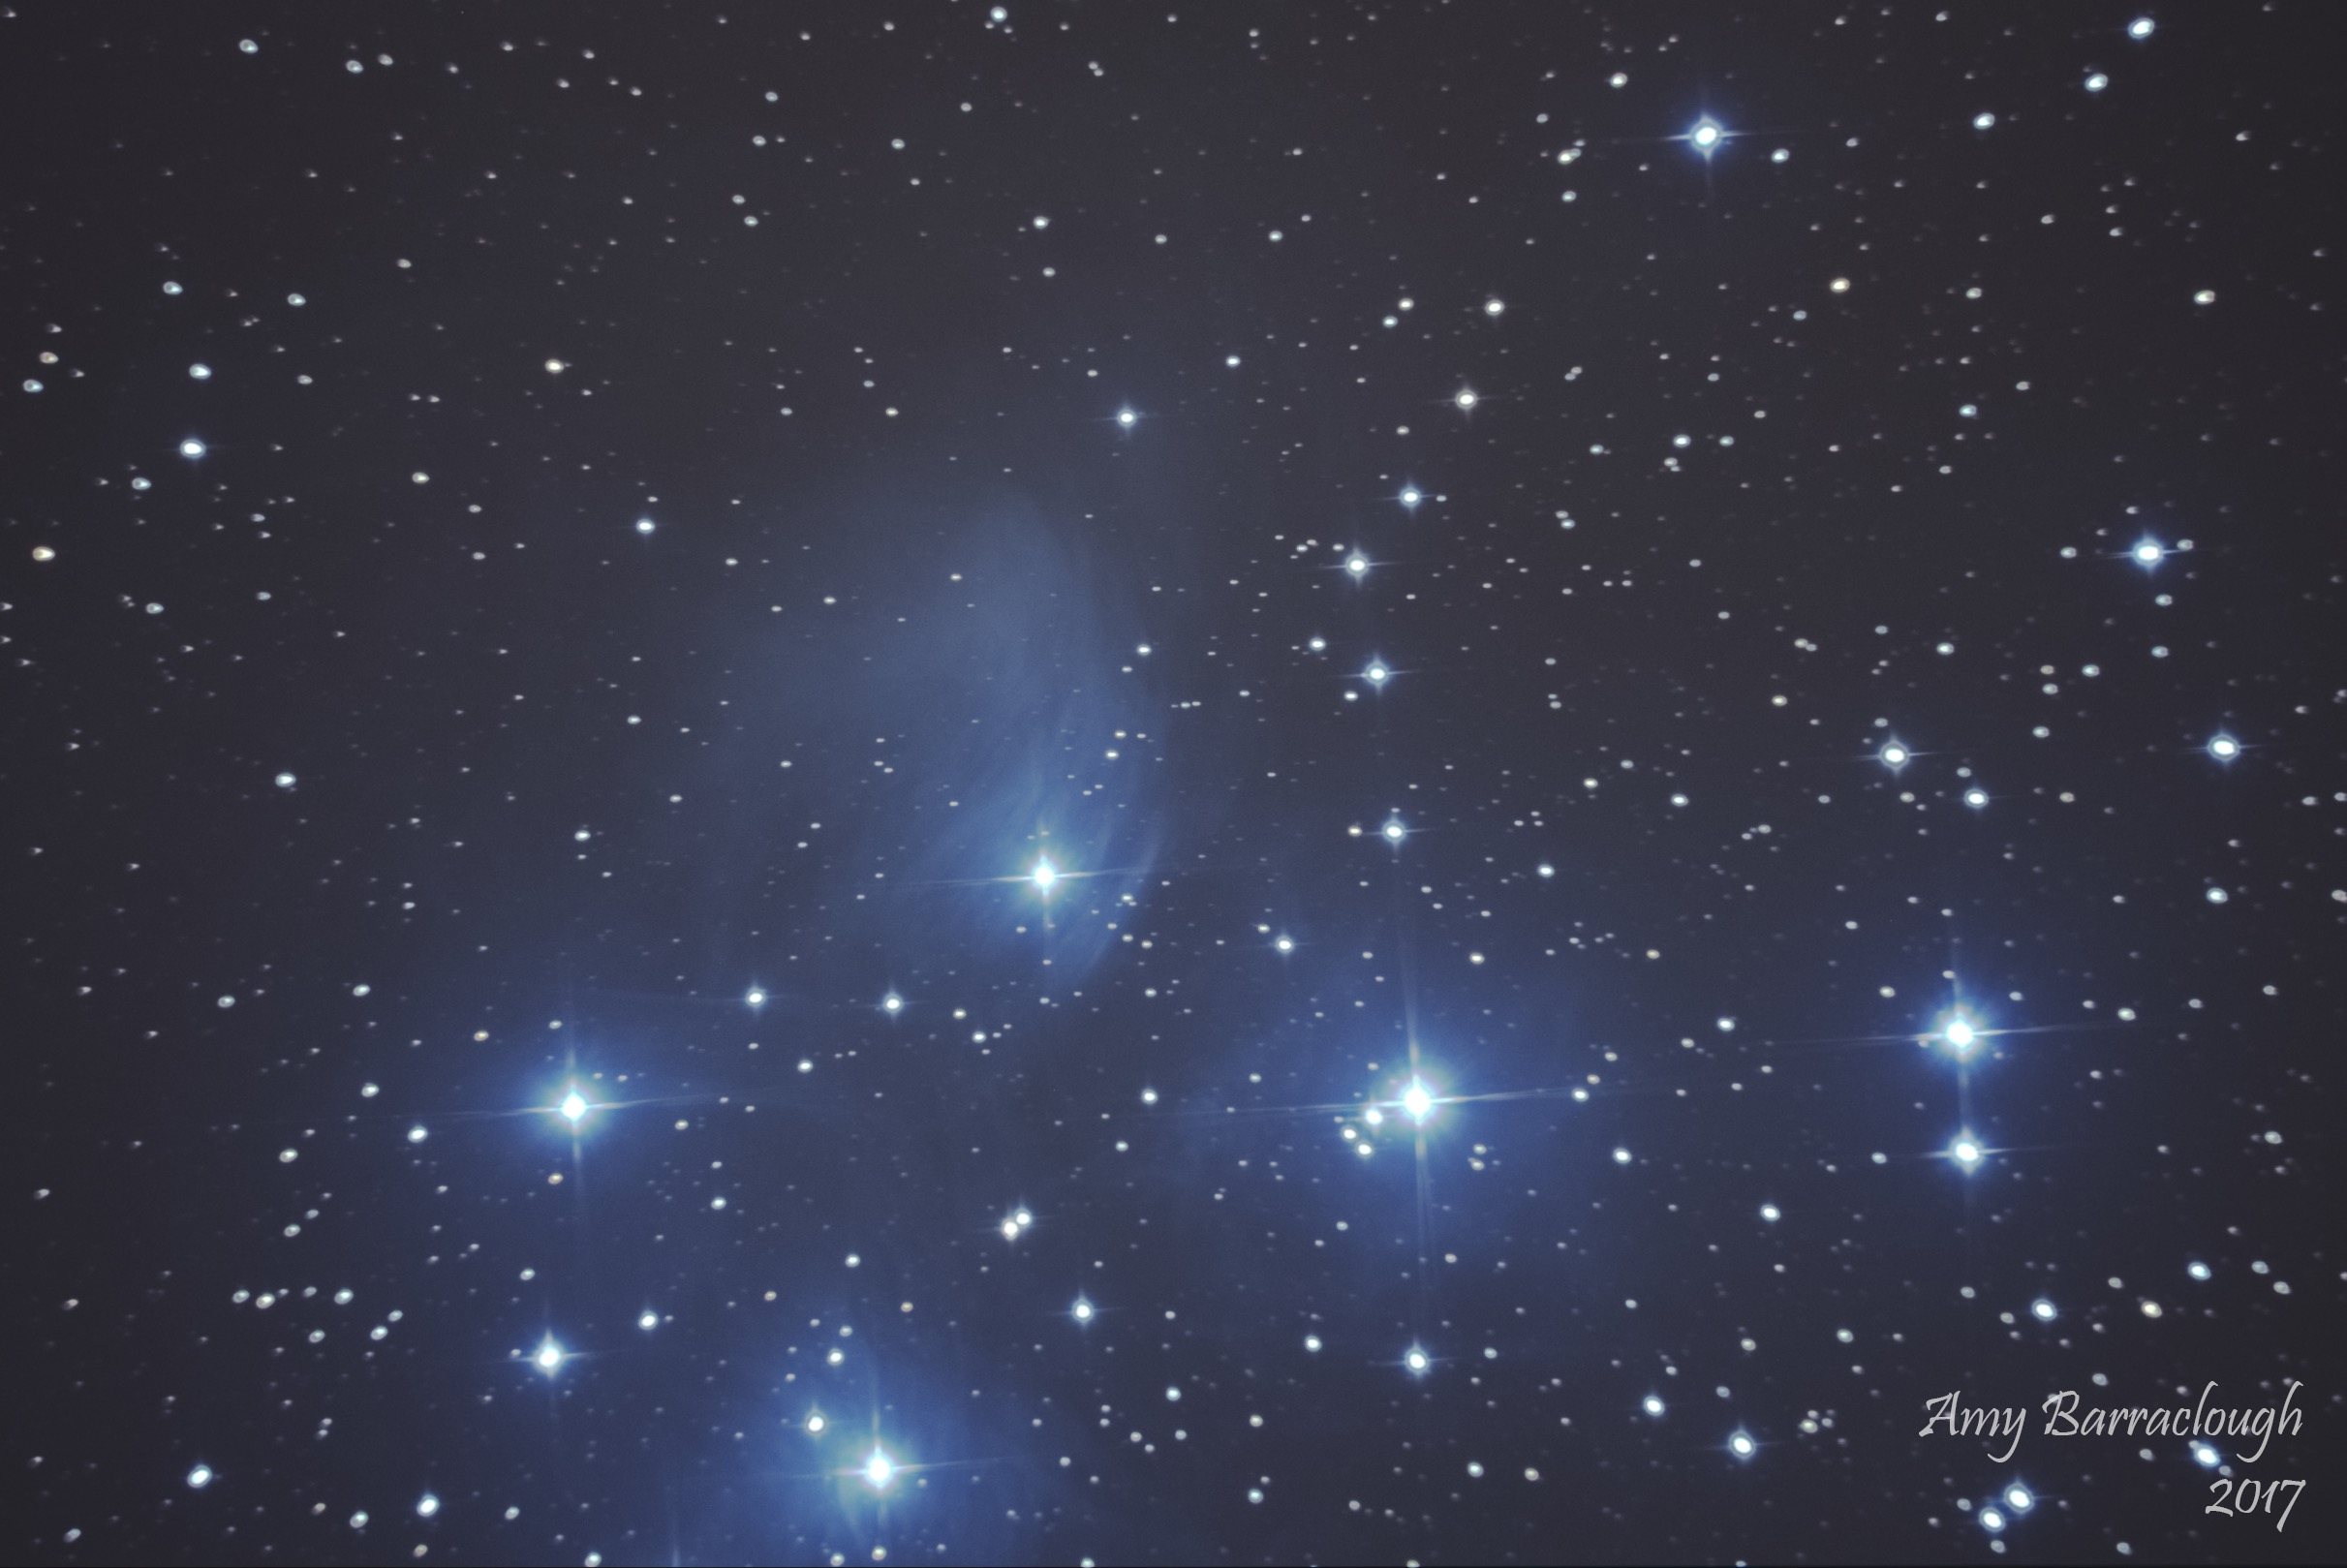 The Pleiades (M45) - Amy Barraclough